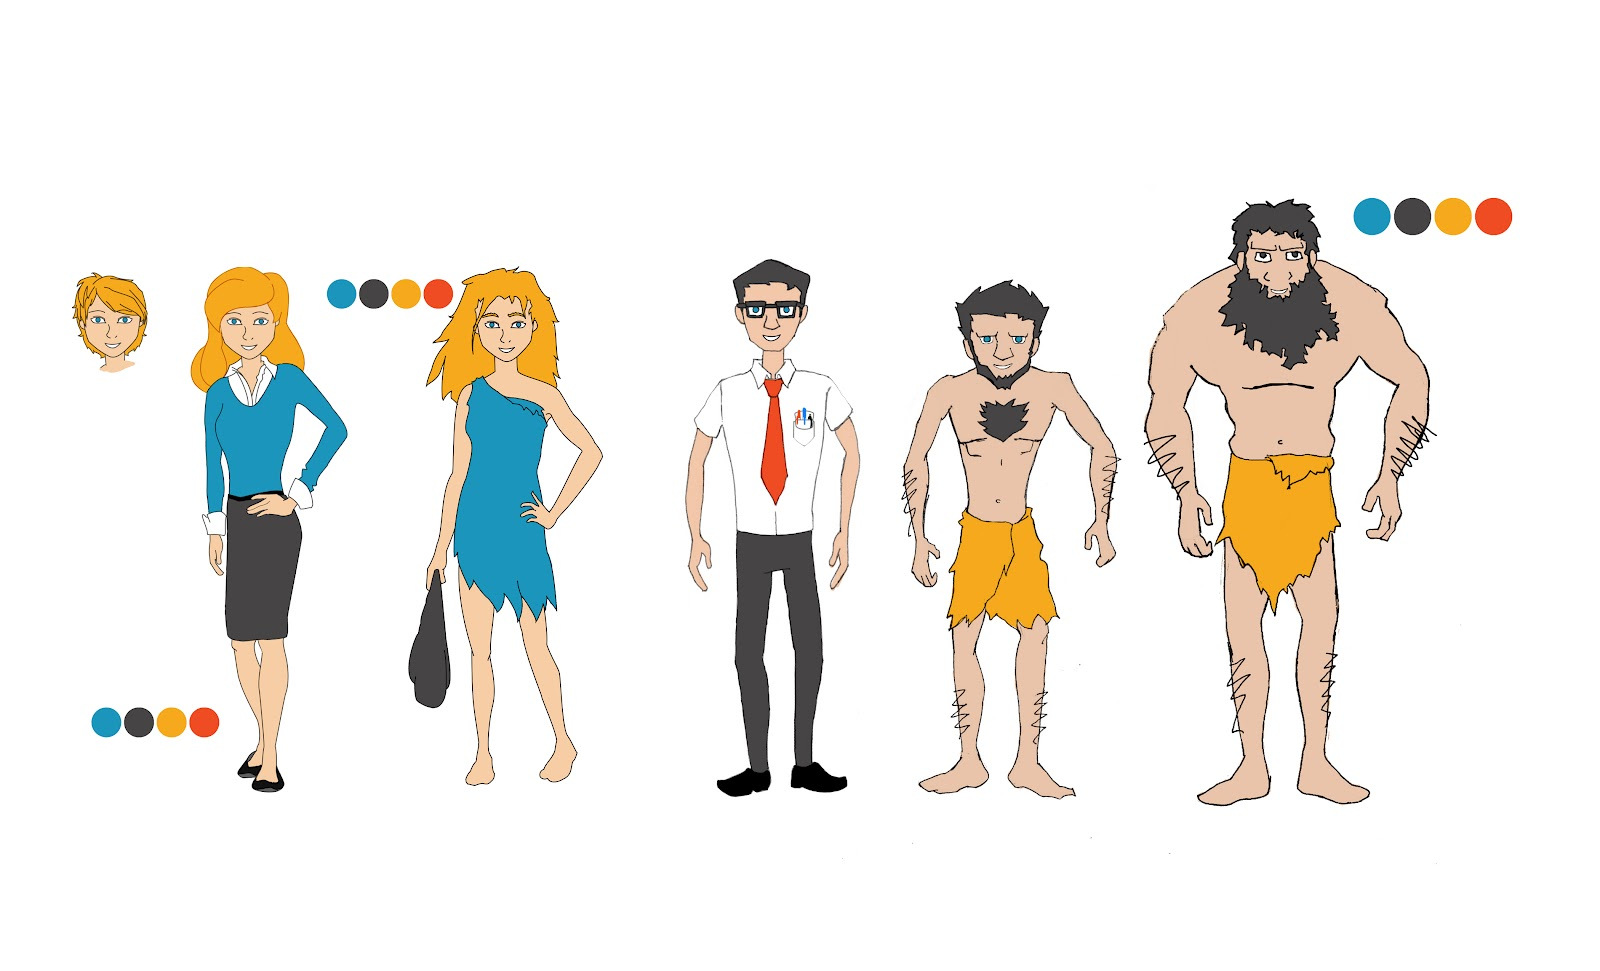 Character Design Layout : Quenton thompson dot align character design storyboard